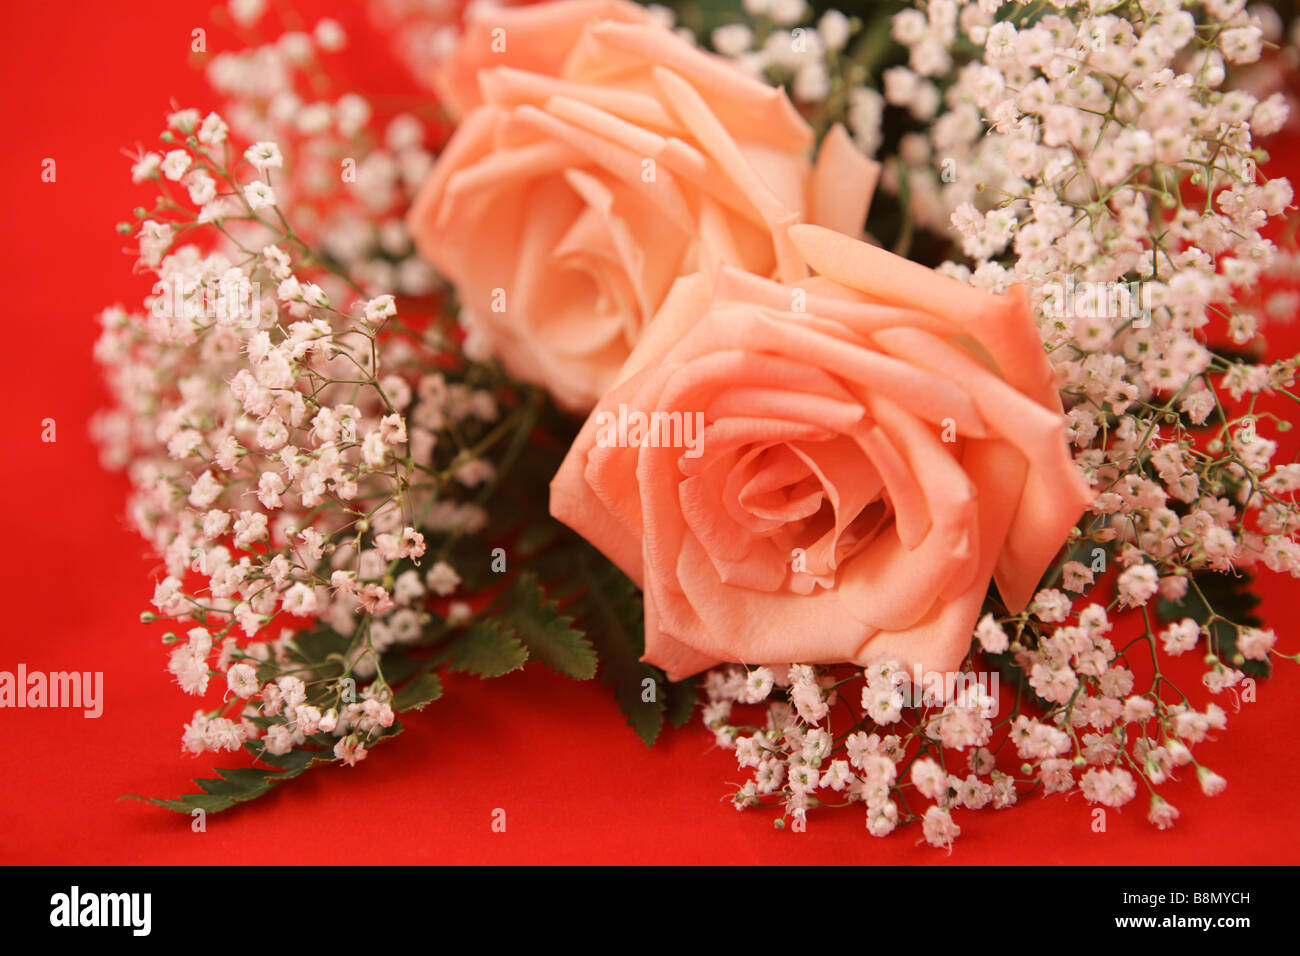 A bouquet of pink roses and baby s breath on a bright red background Stock Photo